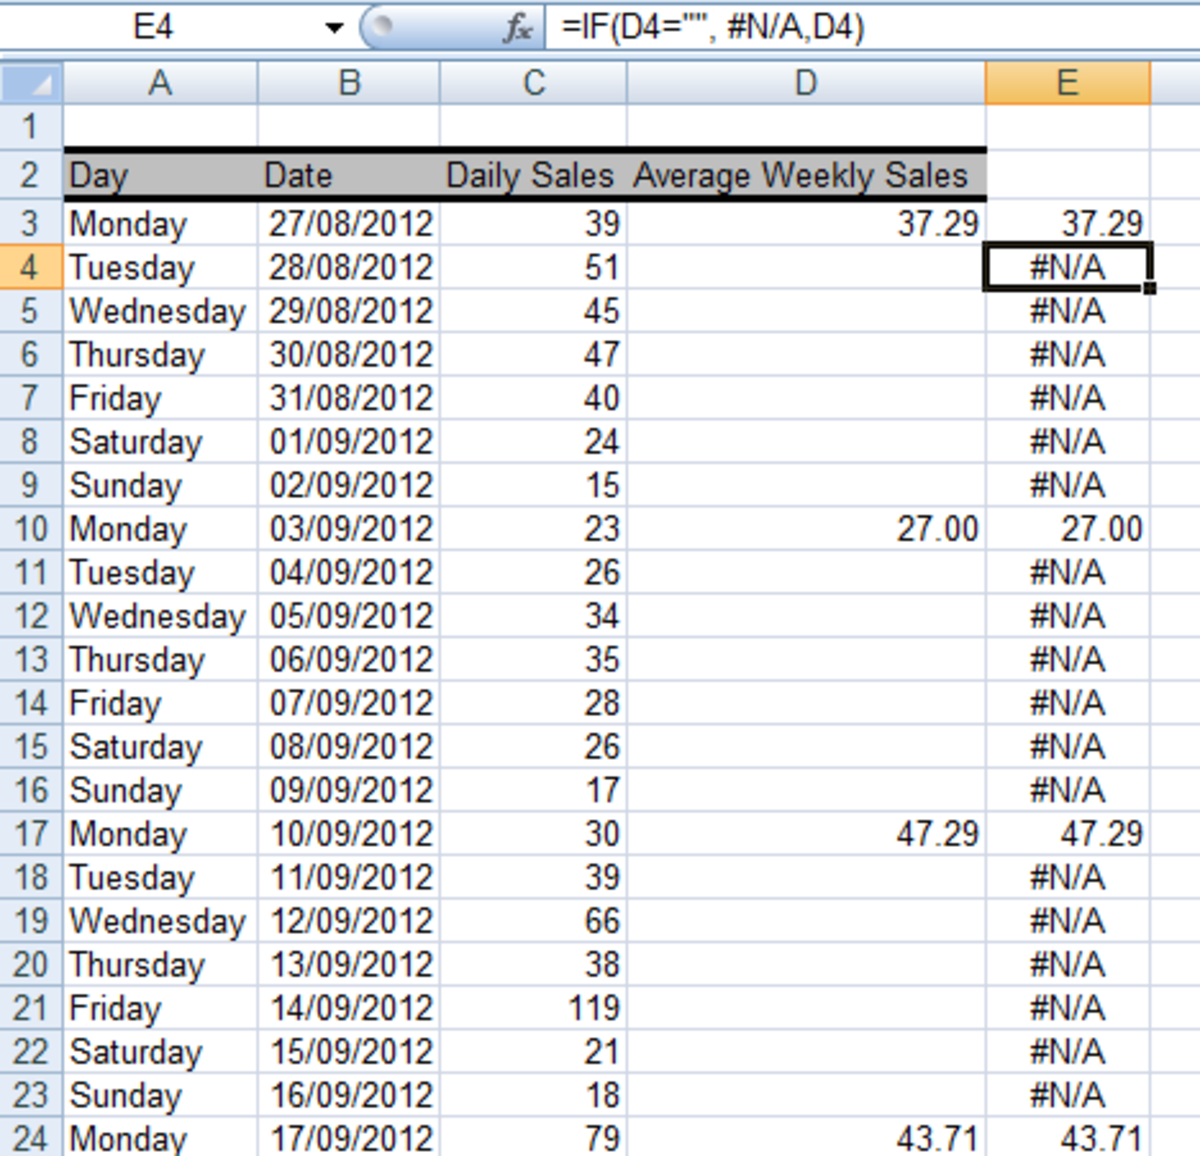 Ediblewildsus  Sweet How To Get Excel  And  To Ignore Empty Cells In A Chart Or  With Heavenly Using The If Function In A Formula To Convert Empty Cells To Na With Amusing Define A Range In Excel Also Clipboard Excel In Addition Microsoft Excel Buy And Formula For Percent Increase In Excel As Well As Excel Text To Numbers Additionally Cost Benefit Analysis Excel Template From Turbofuturecom With Ediblewildsus  Heavenly How To Get Excel  And  To Ignore Empty Cells In A Chart Or  With Amusing Using The If Function In A Formula To Convert Empty Cells To Na And Sweet Define A Range In Excel Also Clipboard Excel In Addition Microsoft Excel Buy From Turbofuturecom